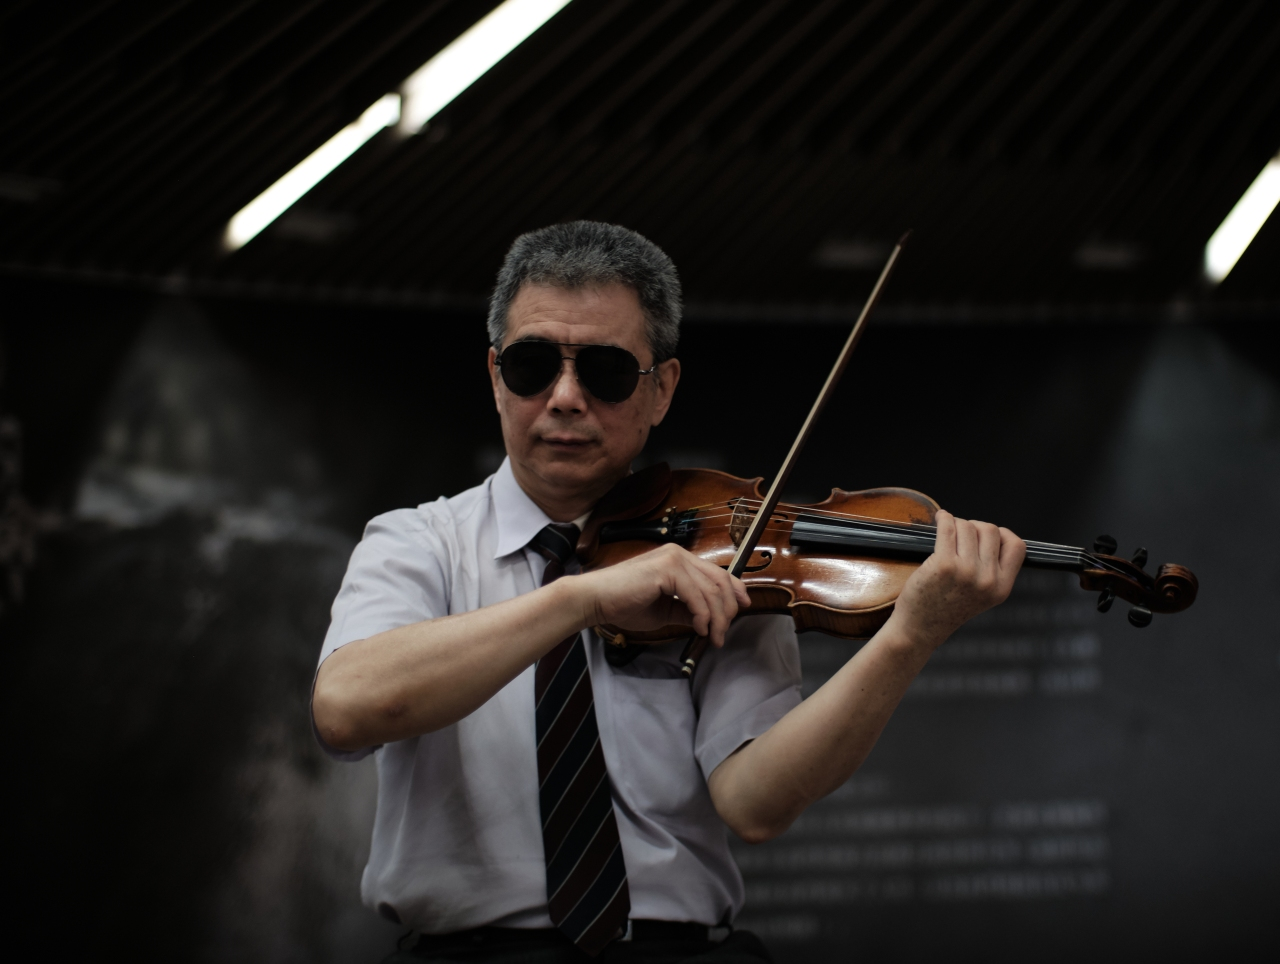 The Blind Subway Performer